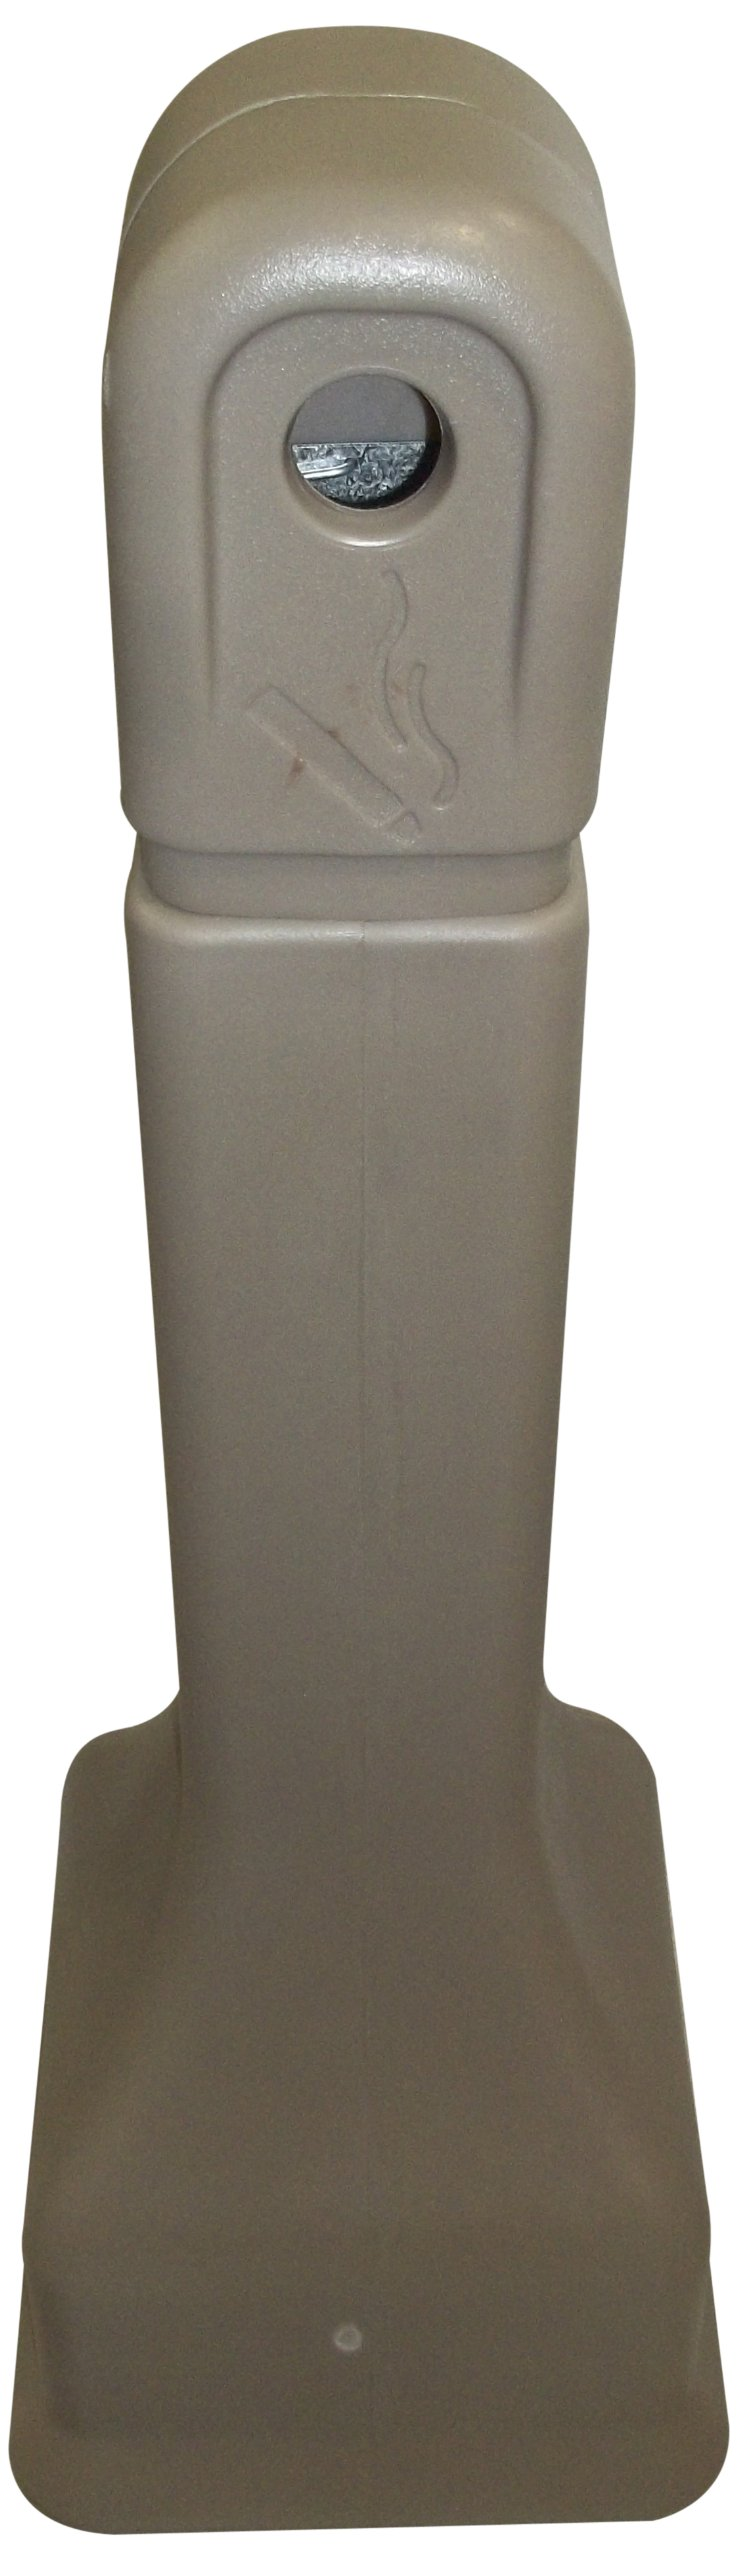 Forte Products 8001326 Plastic Cigarette Disposer Receptacle, 12'' L x 12'' W x 39'' H, Taupe